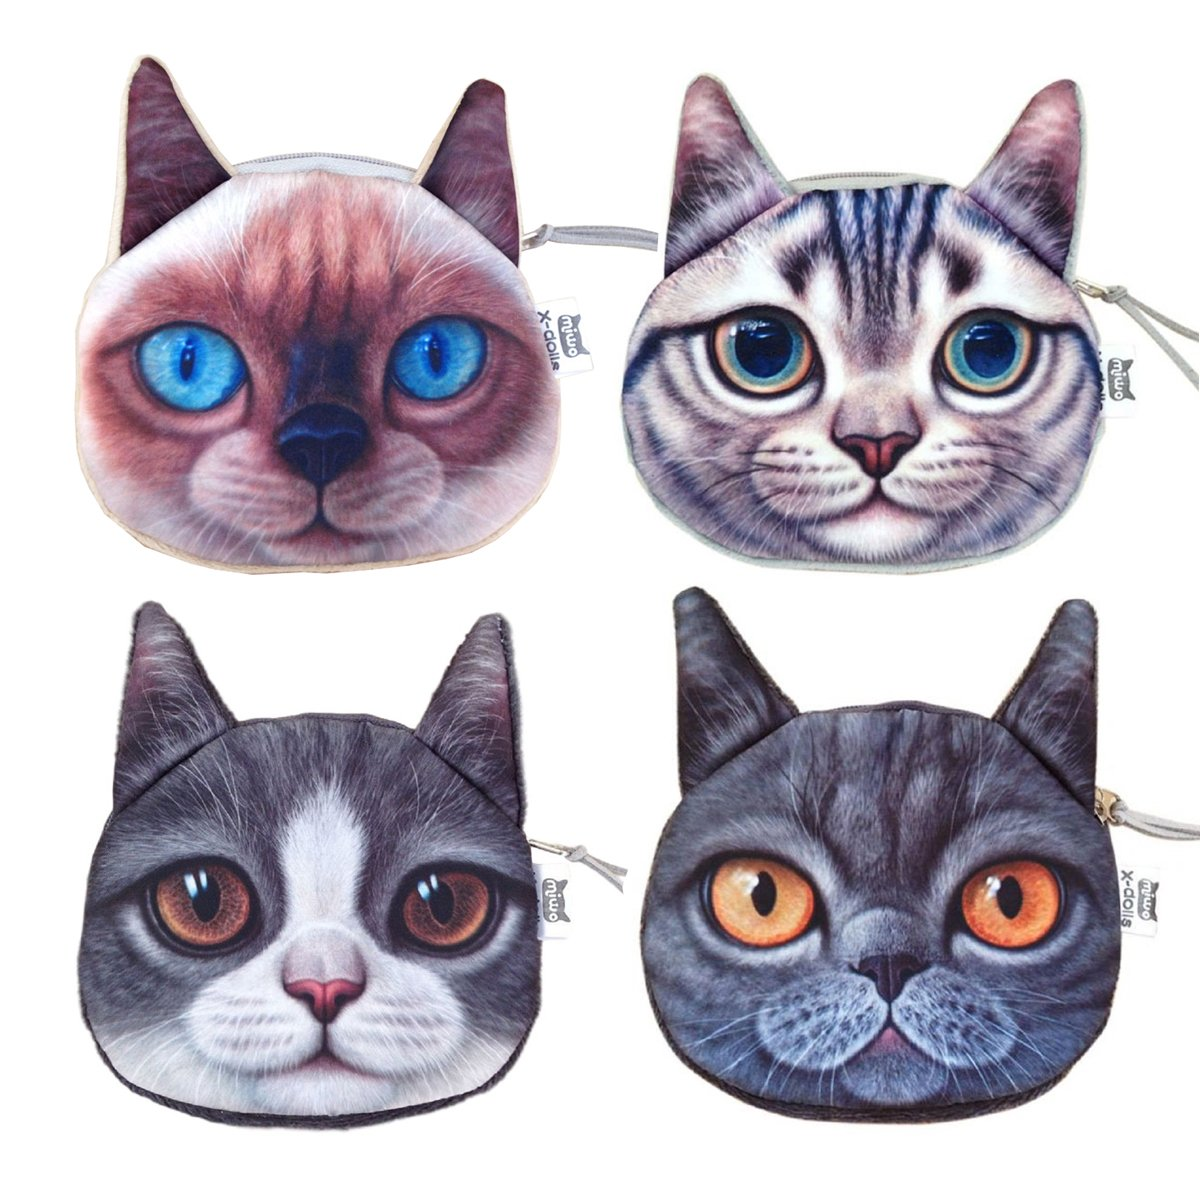 Ai-life Set of 4 Pack 3D Lifelike Cute Cat Face Zipper Bag Coin Case Money Plush Purse Wallet Bag Pouch Handbag